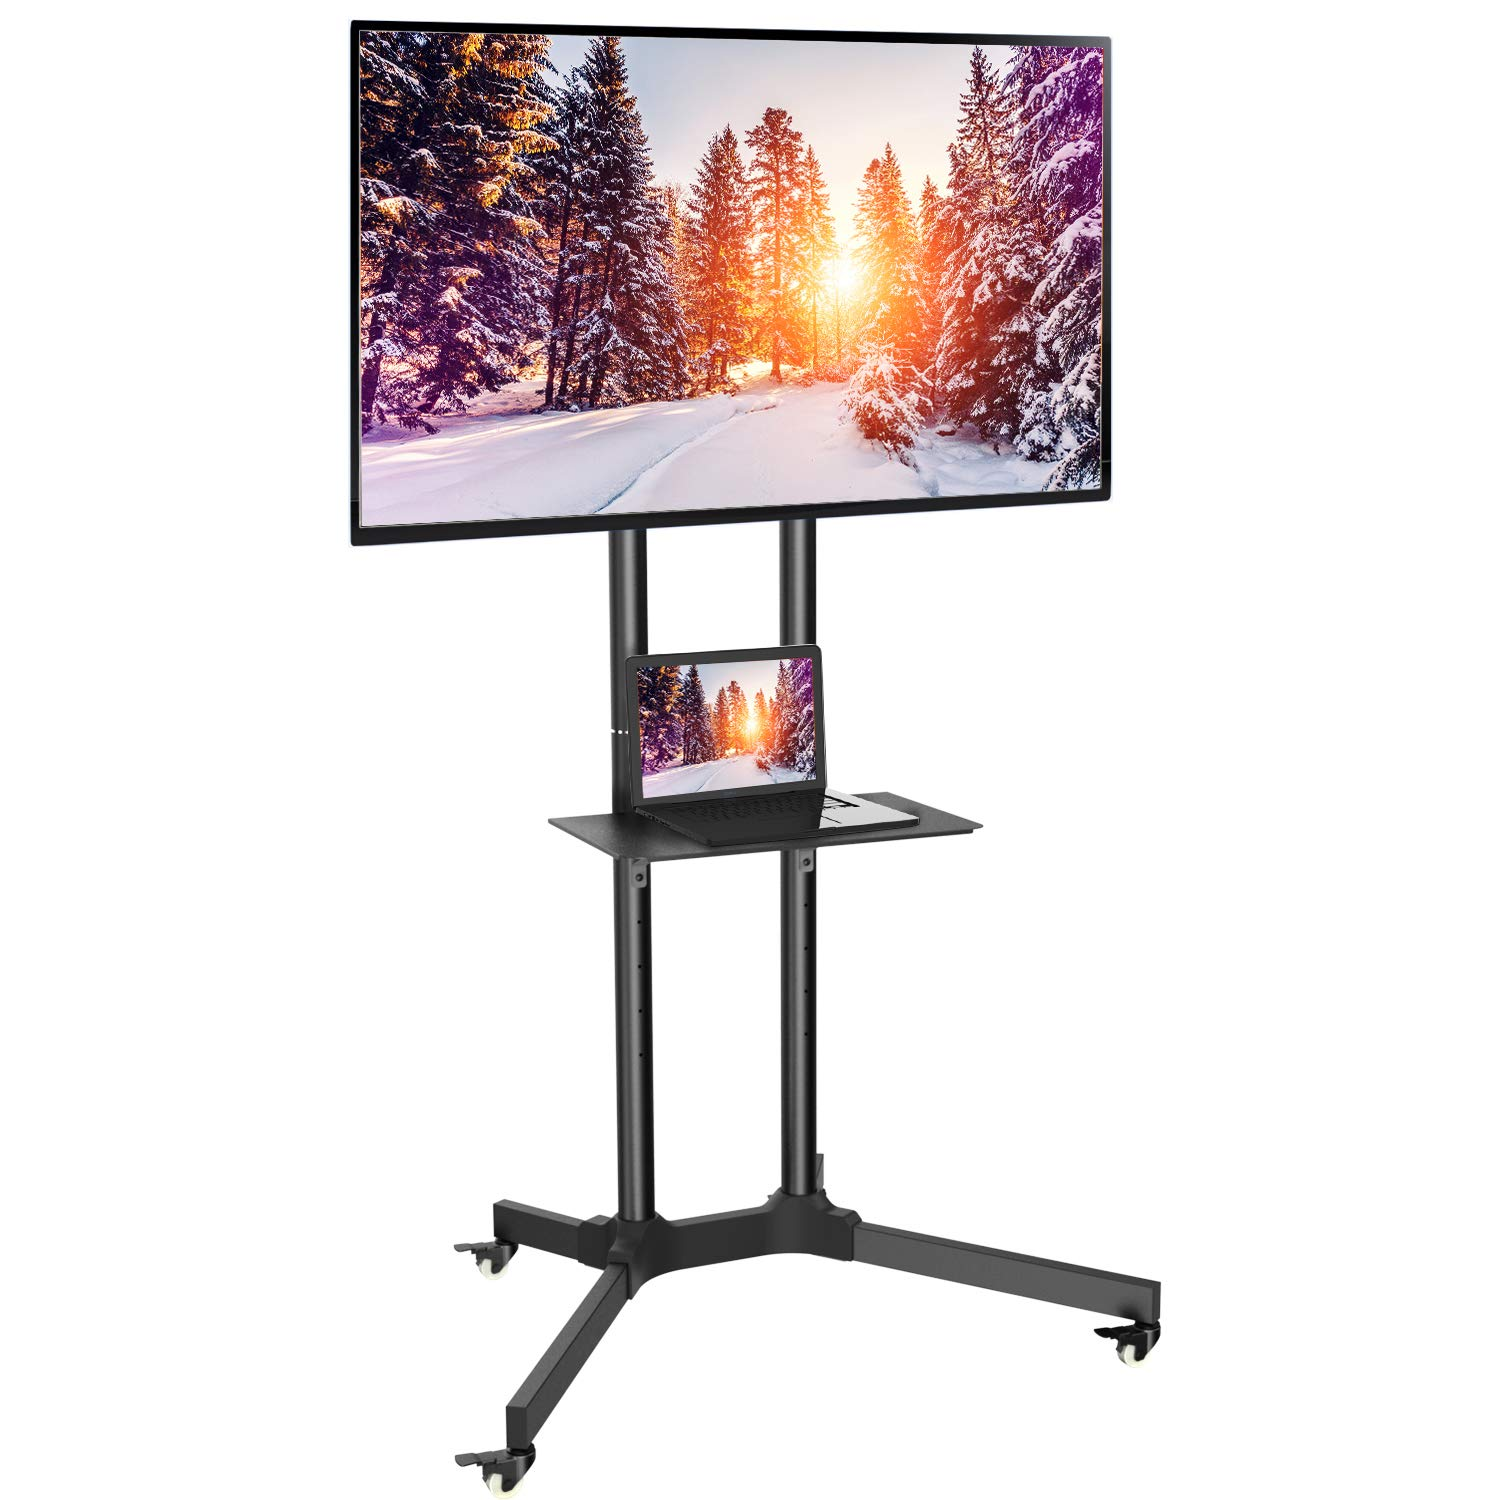 Black TV Cart W/Wheels for LCD LED Plasma Flat Panel Stand 32-65 Inch - Holds TV up to 132lbs Max VESA 600 x 400, Height Adjustable TV Stand Wheels by PERLESMITH (Model: PSTVMC1)